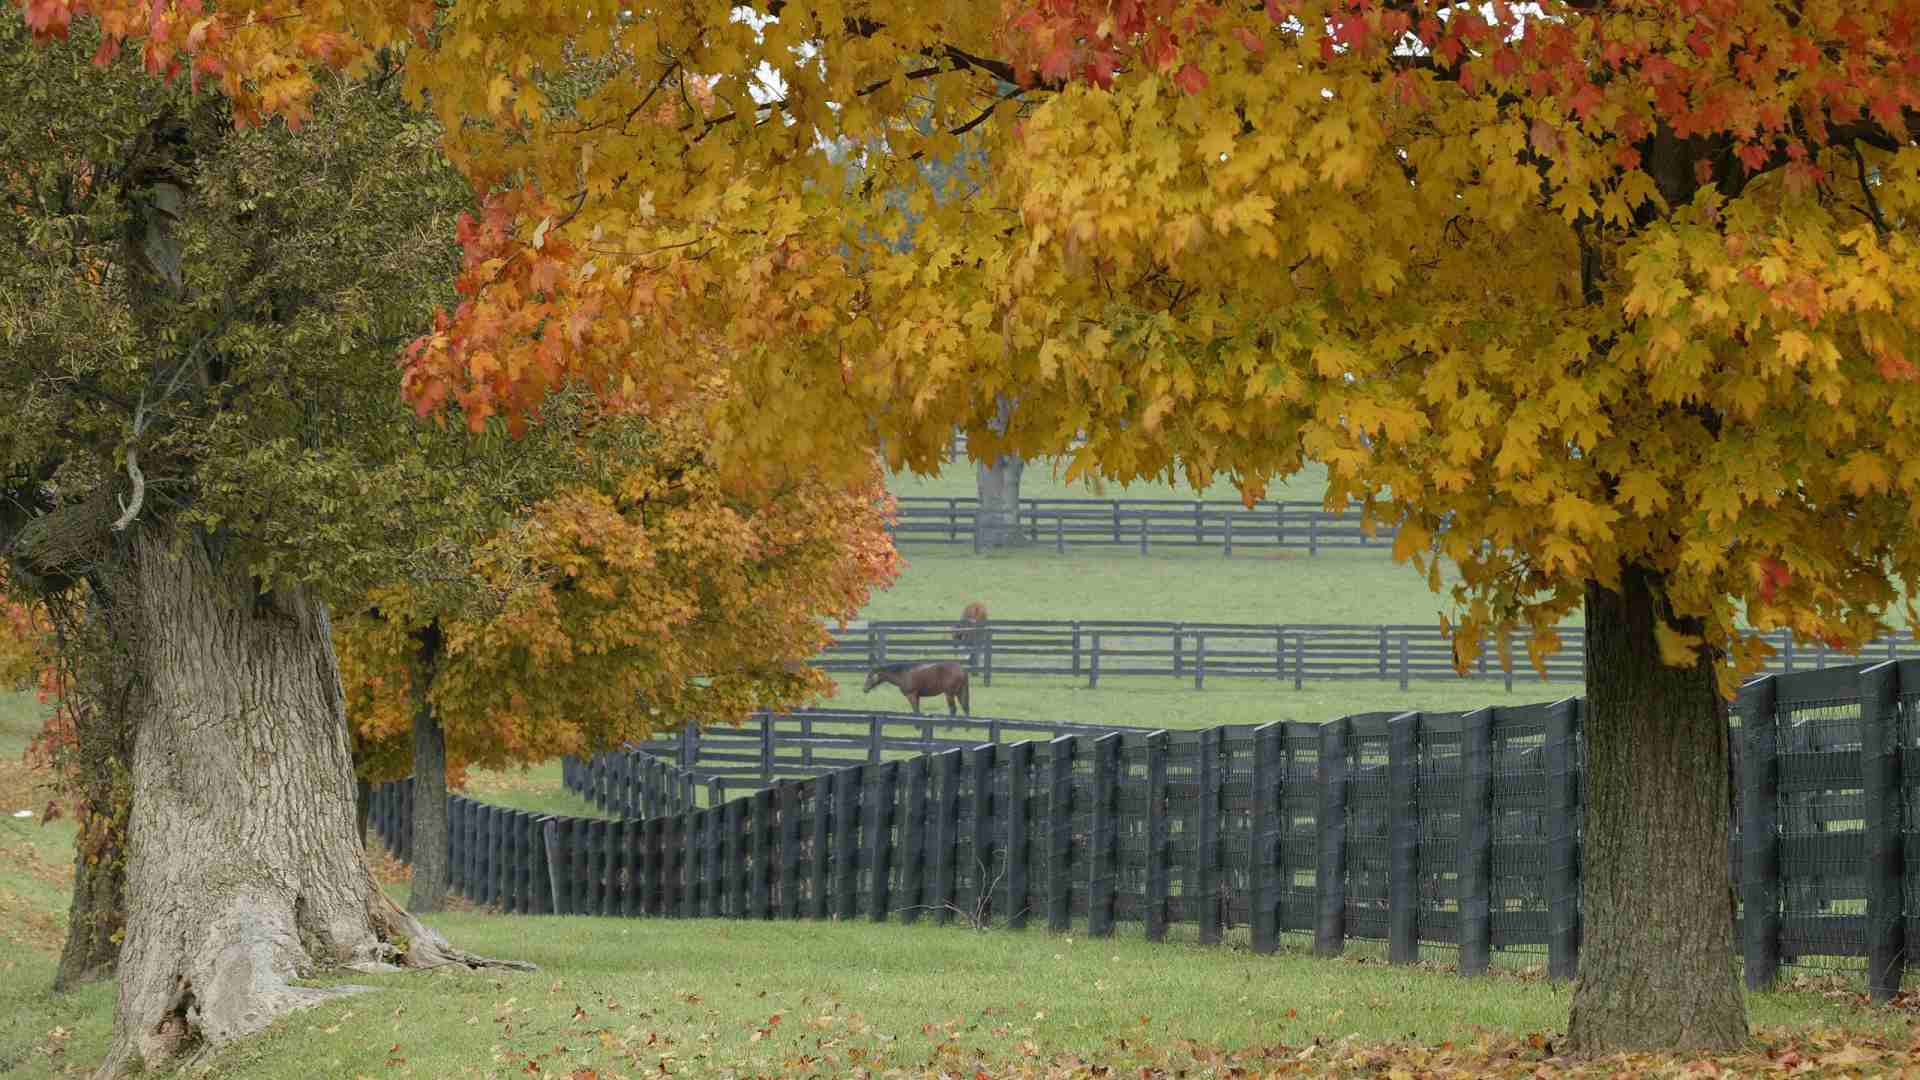 41 Autumn Wallpapers for Computers Tablets or Phones 1920x1080